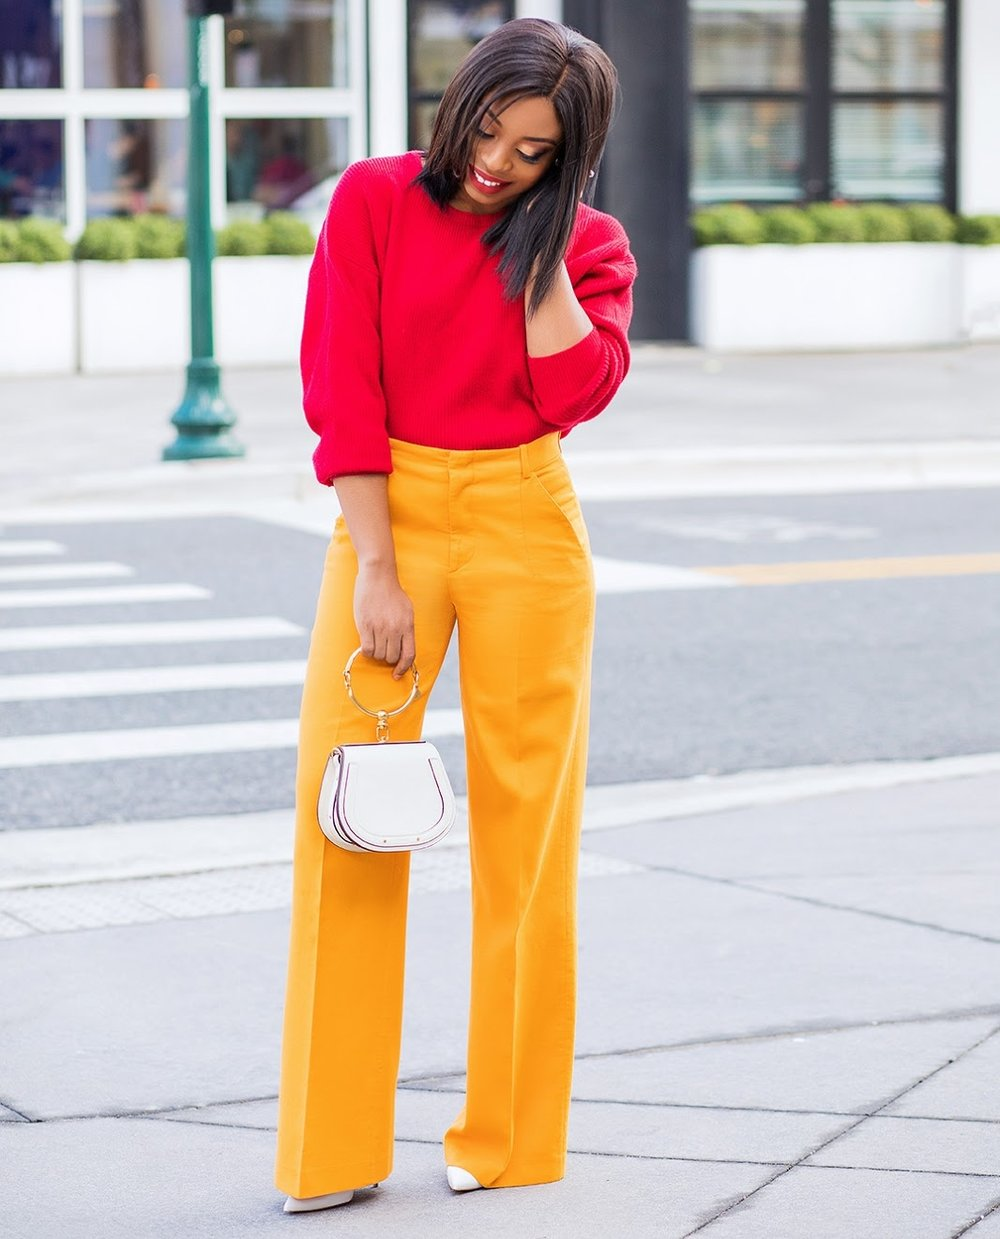 jadore-fashion.com  Mixing two bold colors can make an interesting combination. Color blocking is a great way to ease from winter to spring.